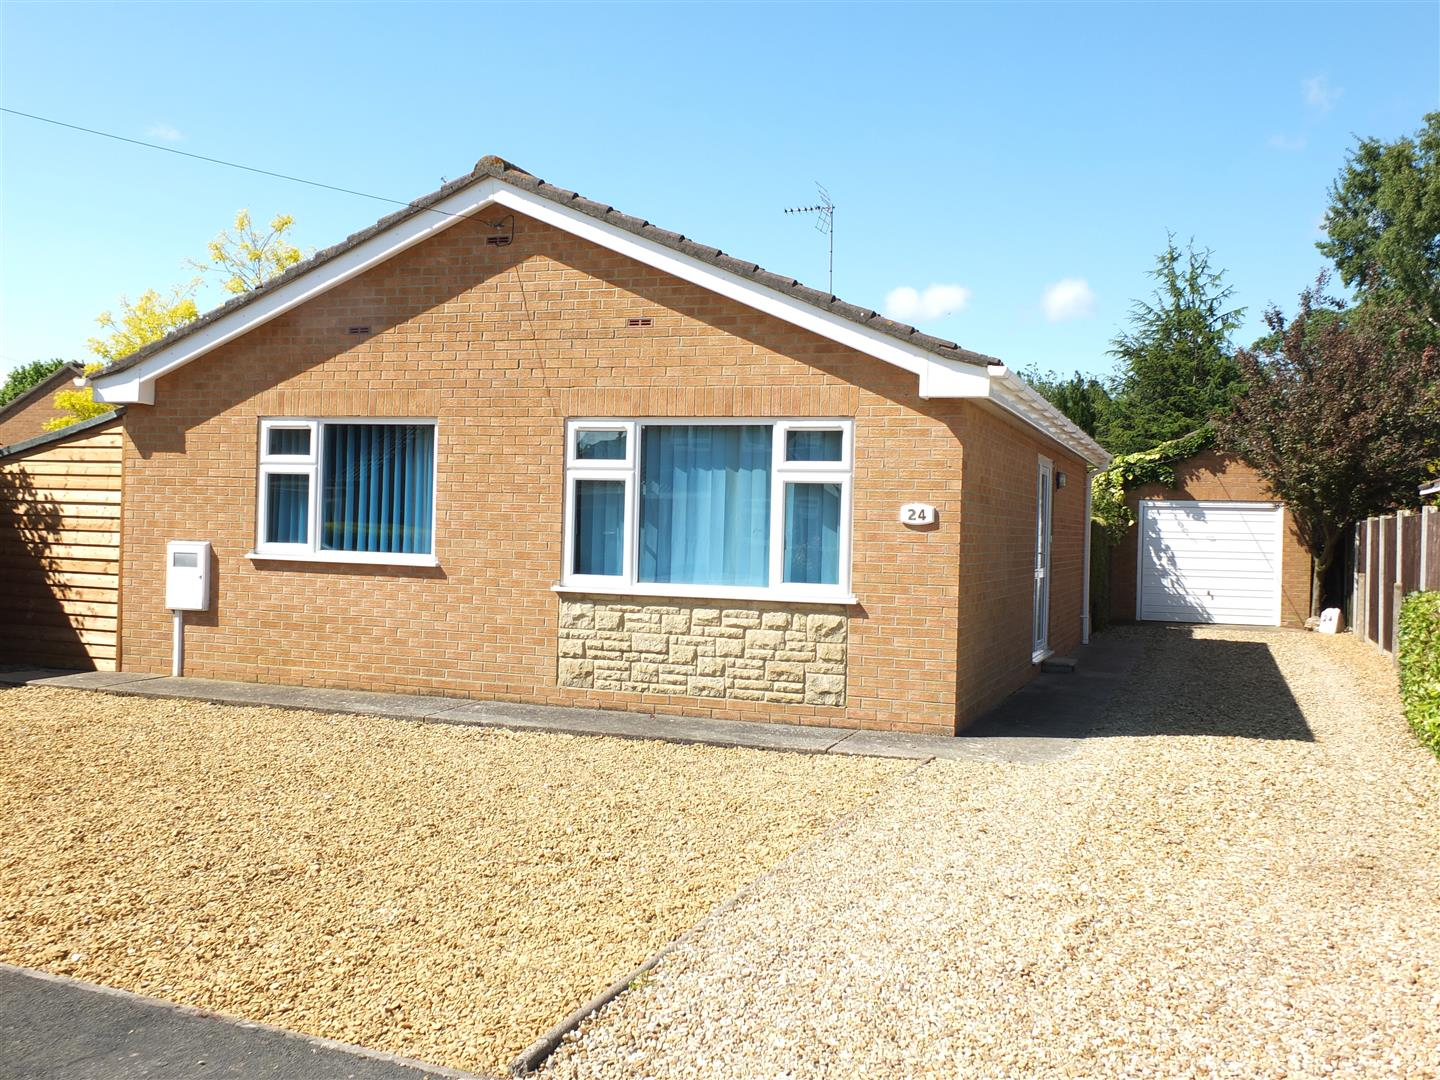 2 bed detached bungalow to rent in Long Sutton Spalding, PE12 9BQ, PE12